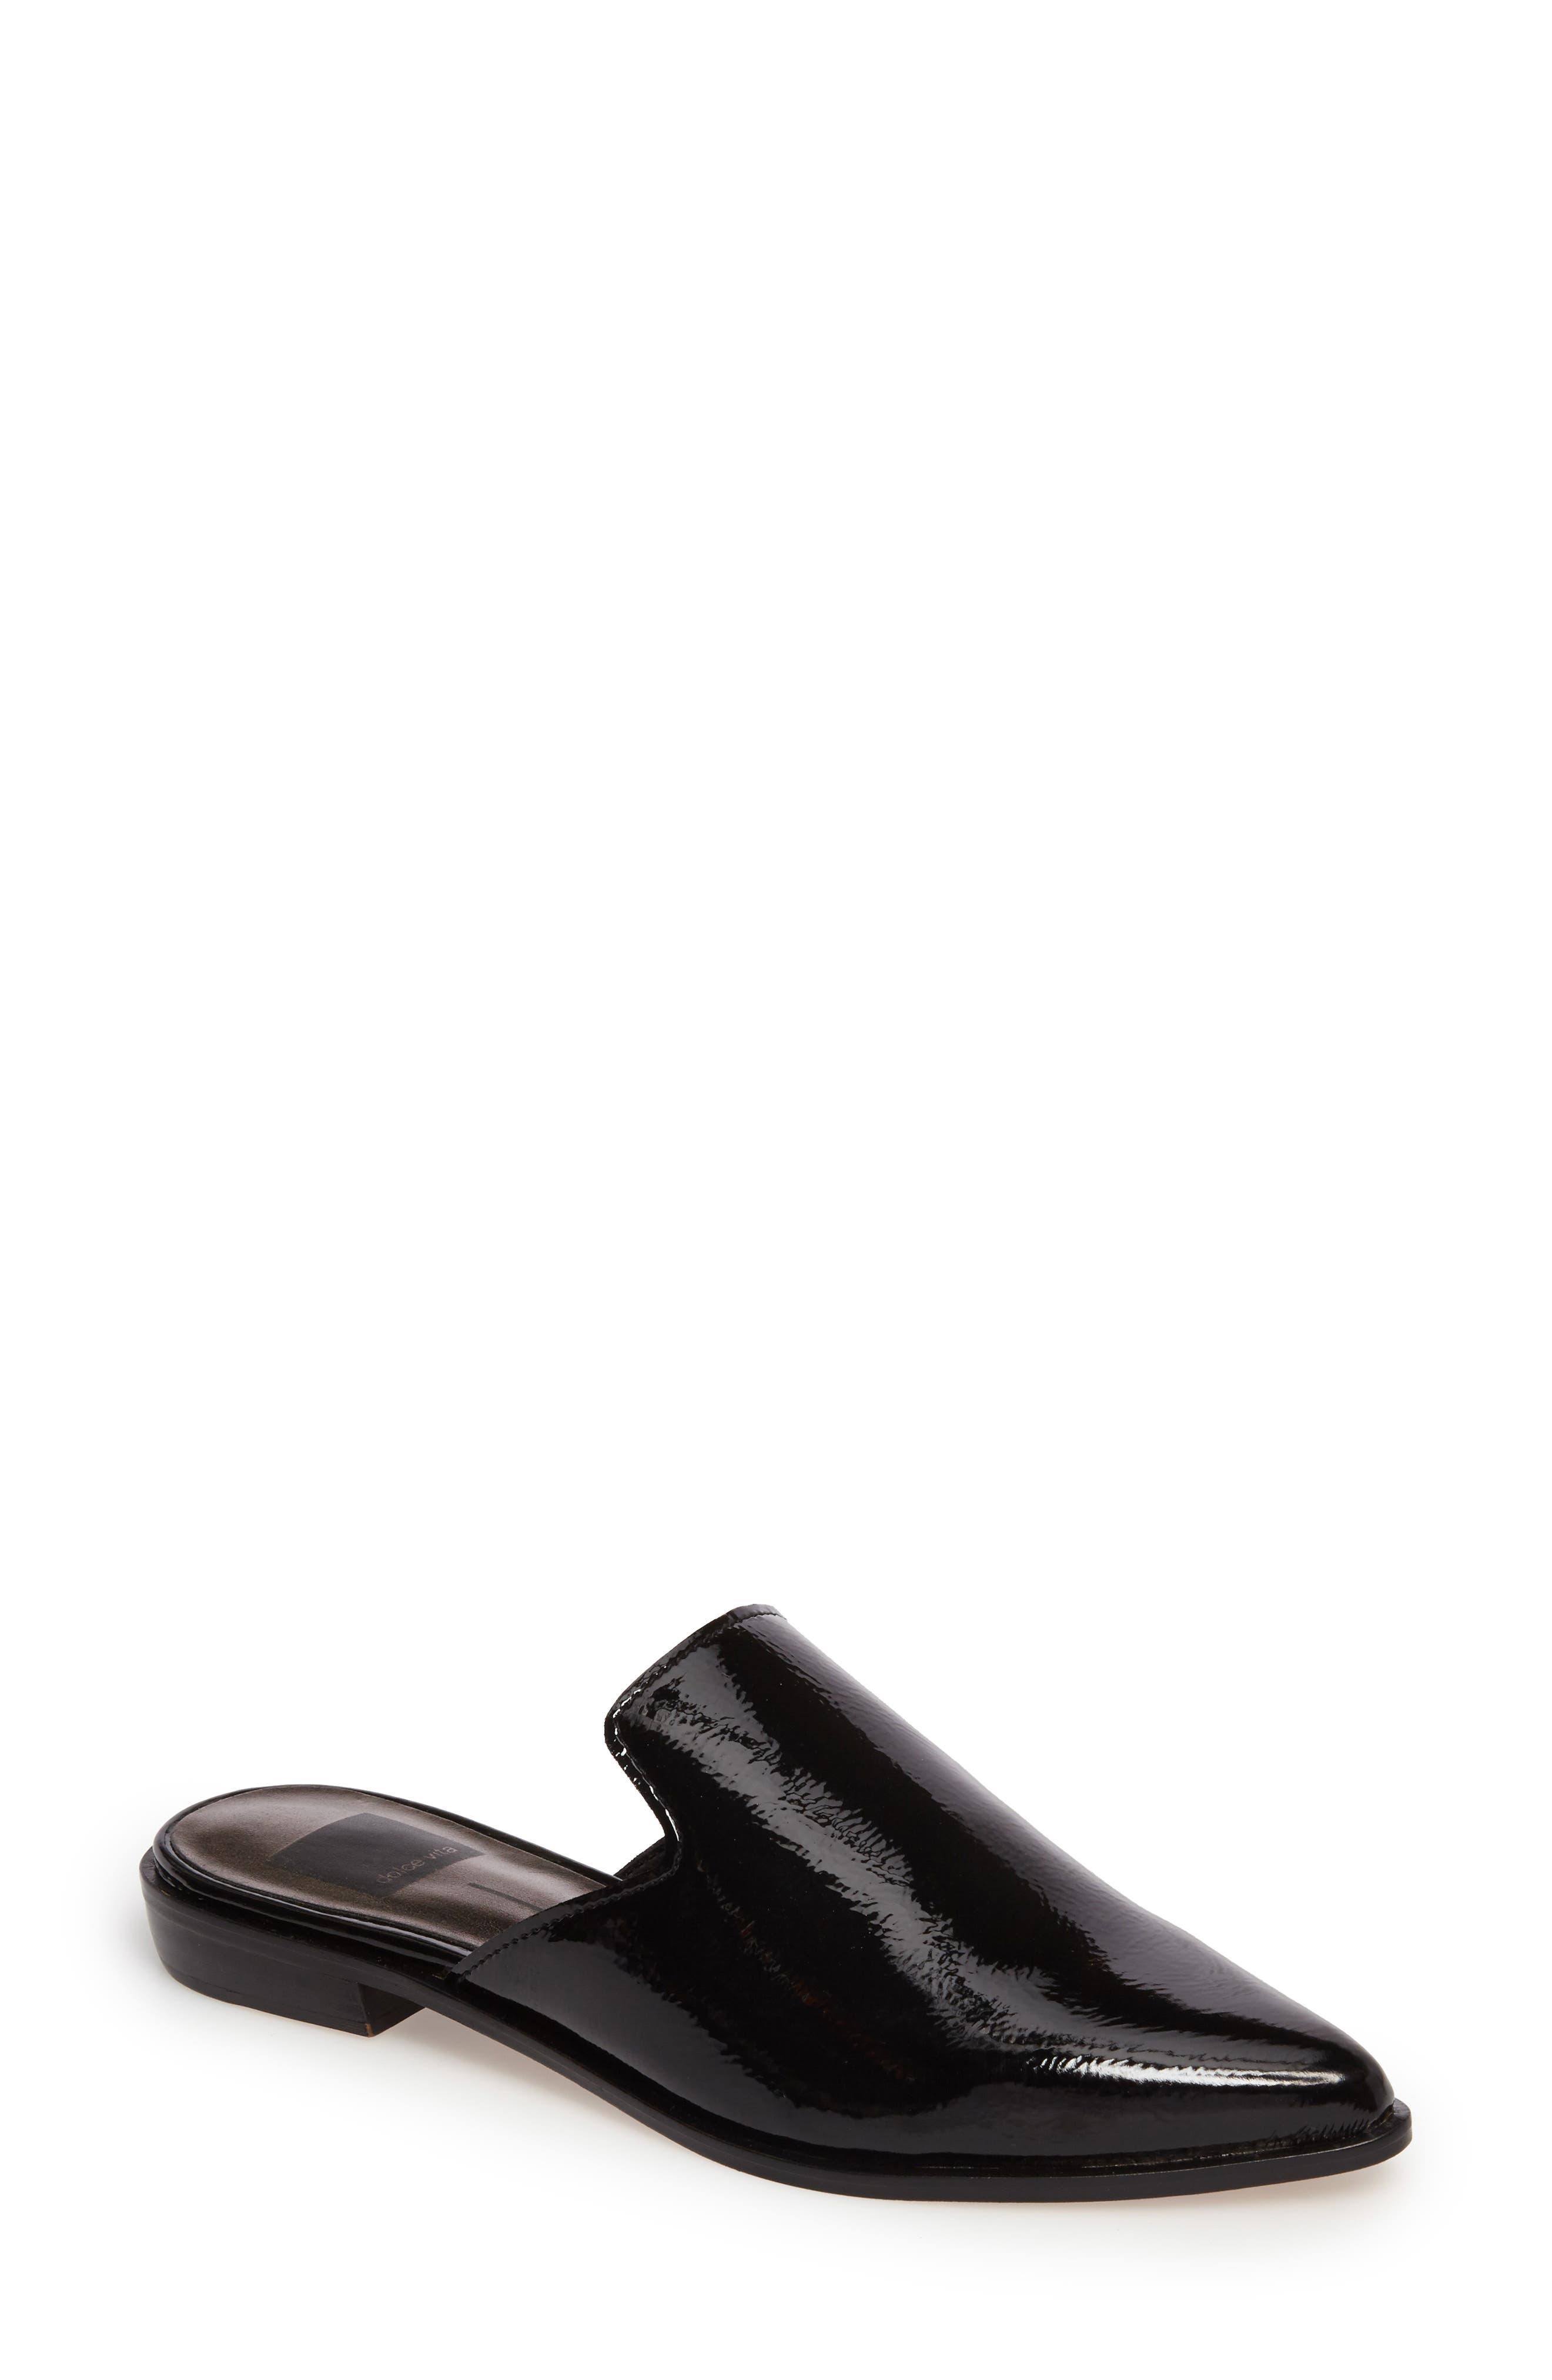 Holli Loafer Mule,                         Main,                         color, 001